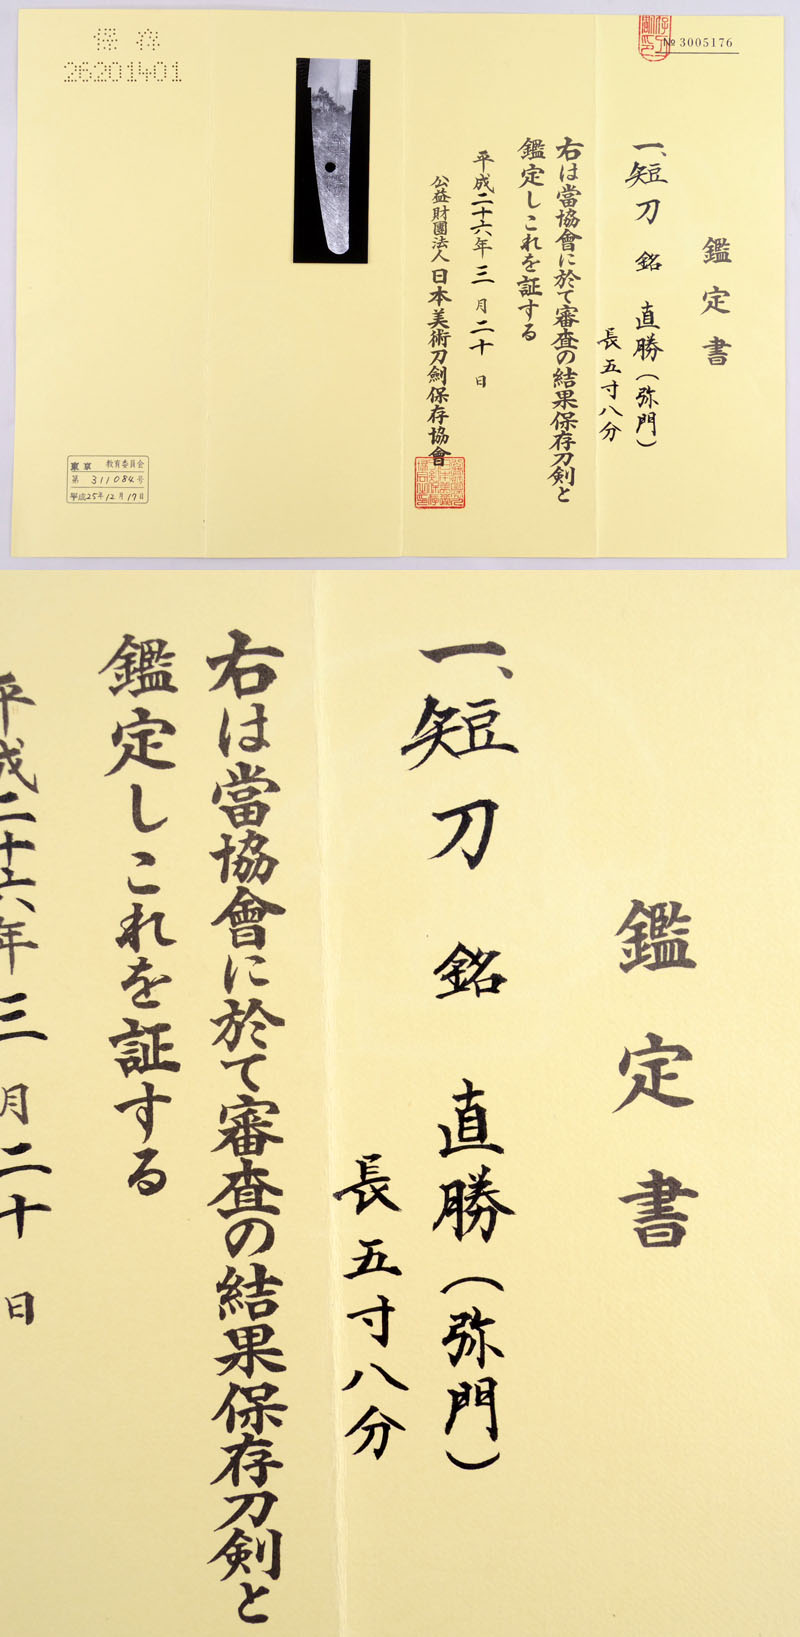 直勝(弥門直勝) Picture of Certificate